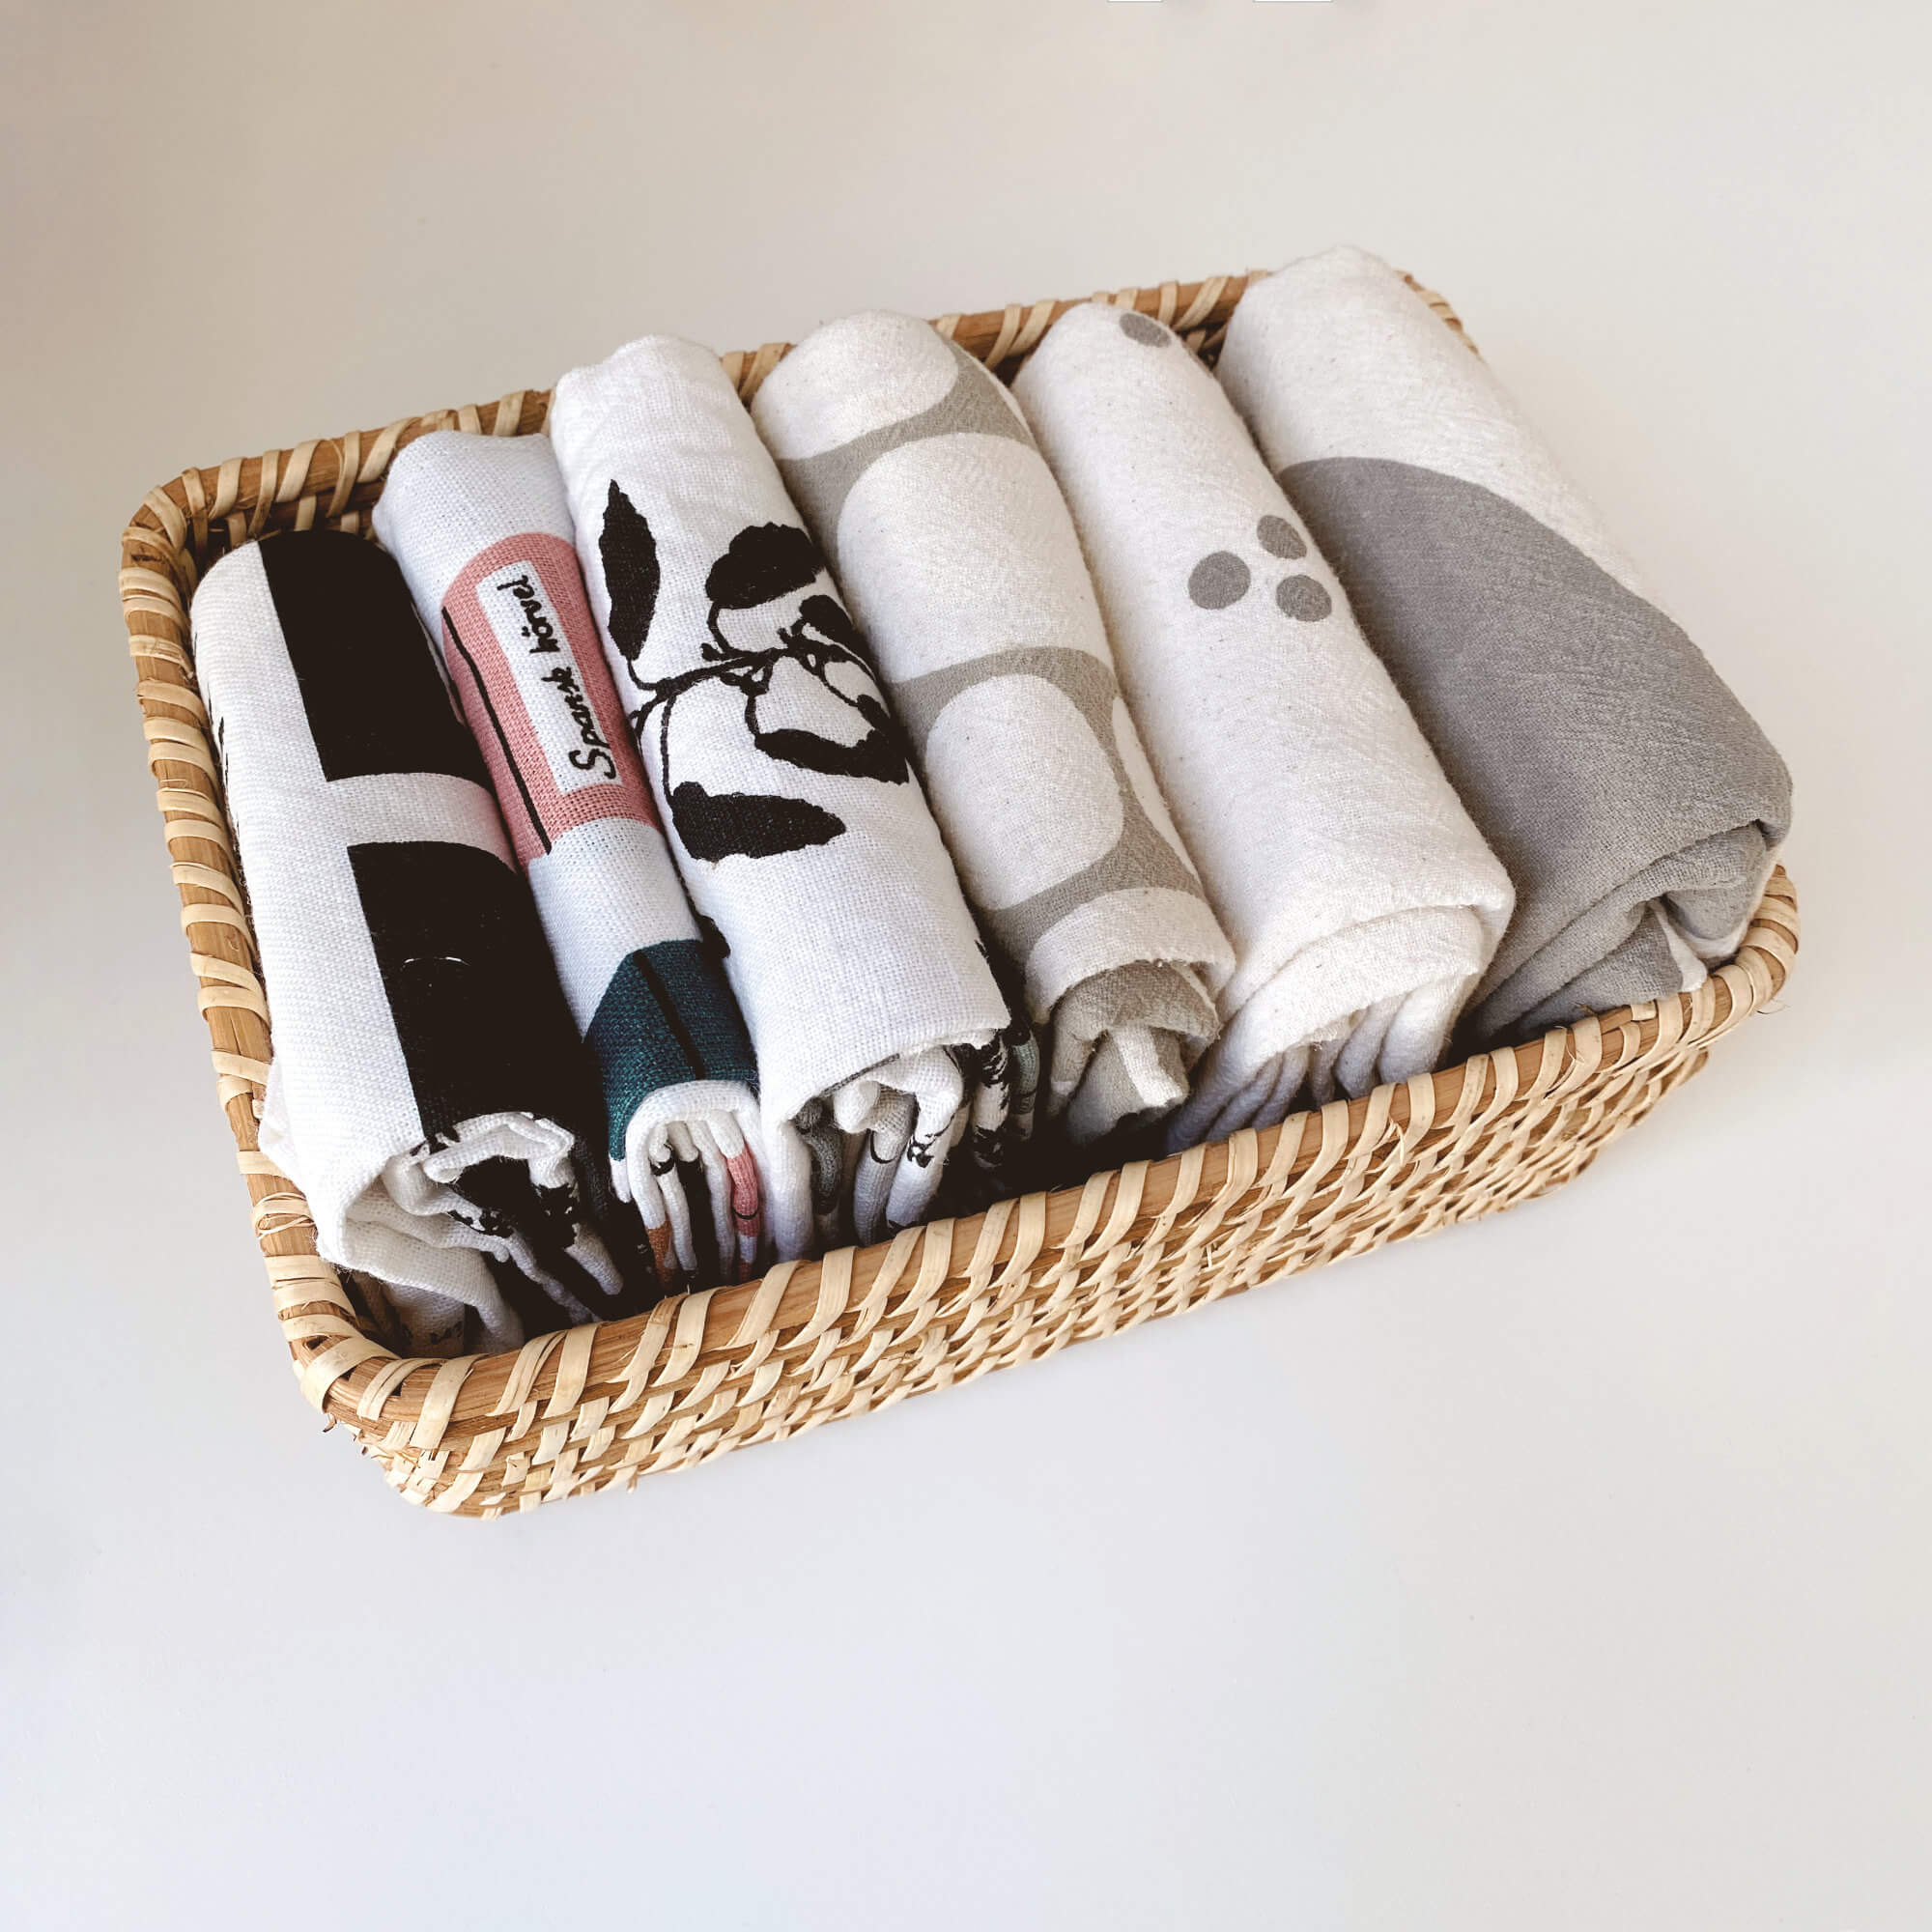 Neatly Folded Tea Towels In A Woven Bamboo Basket Using The KonMari Method Of Tidying